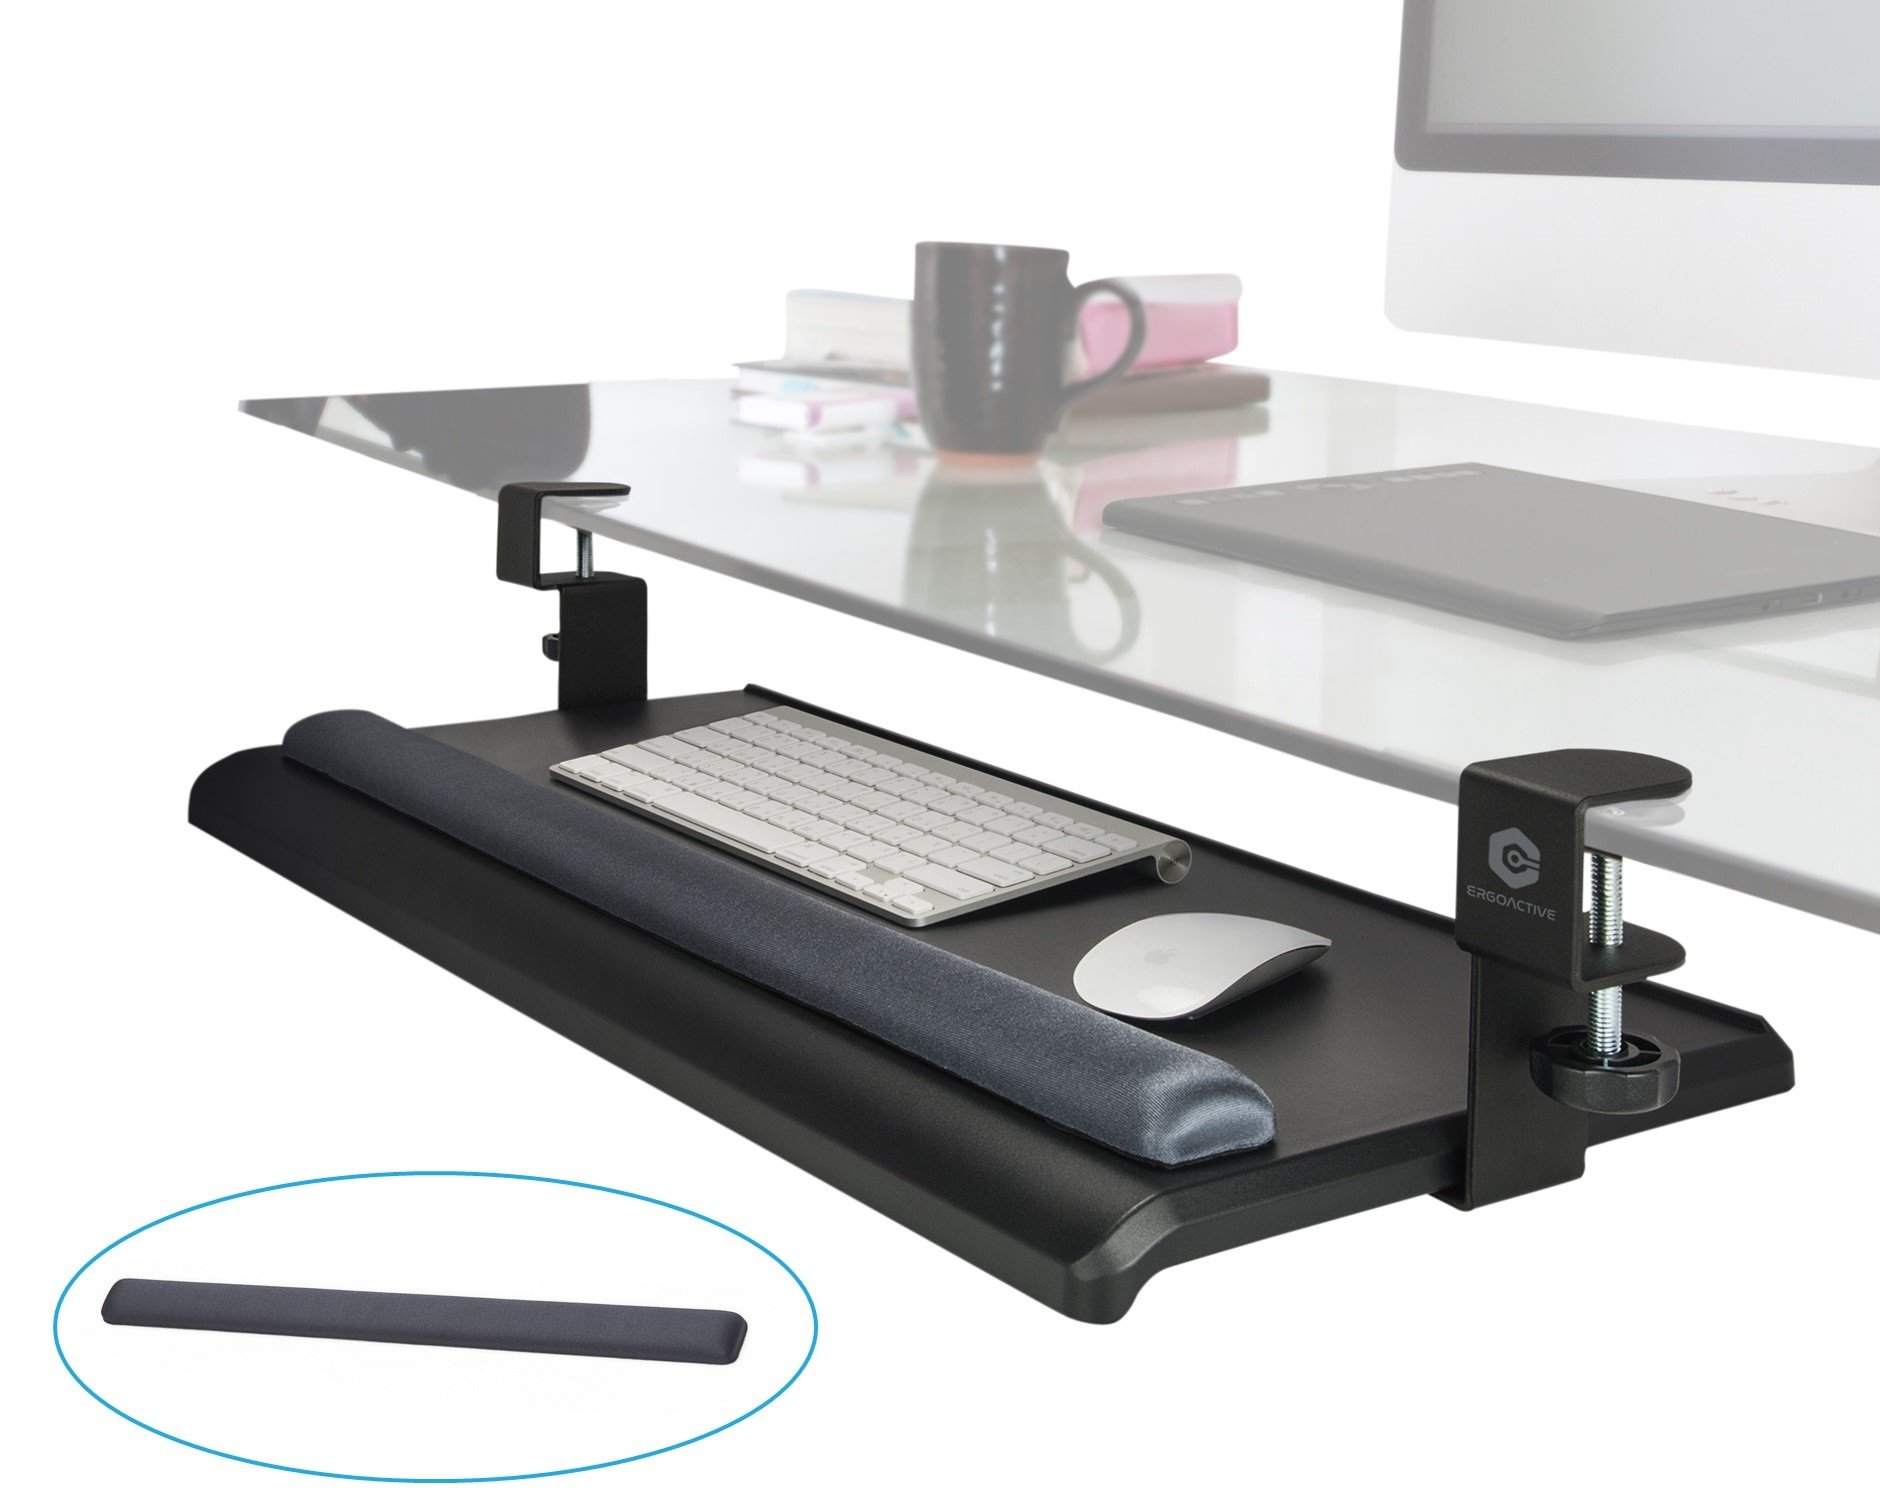 ErgoActive Extra Wide Under Desk Keyboard Tray with Clamp On Easy Installation, No Screws into Desk, Sliding Drawer, Fits Full Size Keyboard and Mouse - Includes Wrist Rest (Wide Tray + Wrist Rest) by ErgoActive